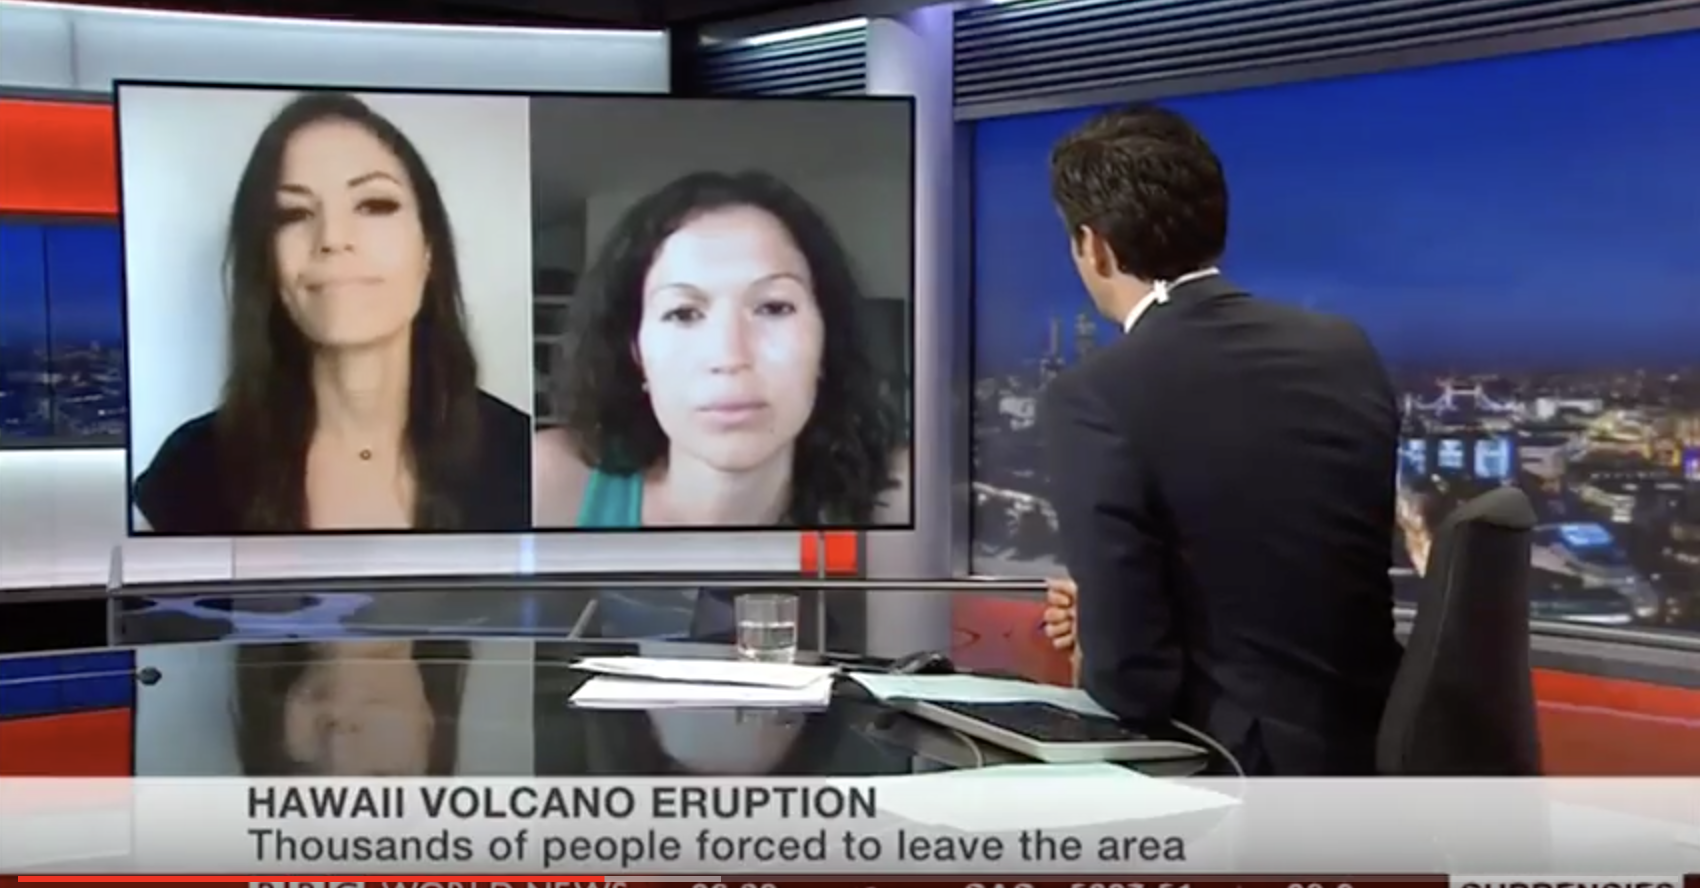 Meteorologist Malika Dudley, Sister Emily Clearwater Interview With BBC World News